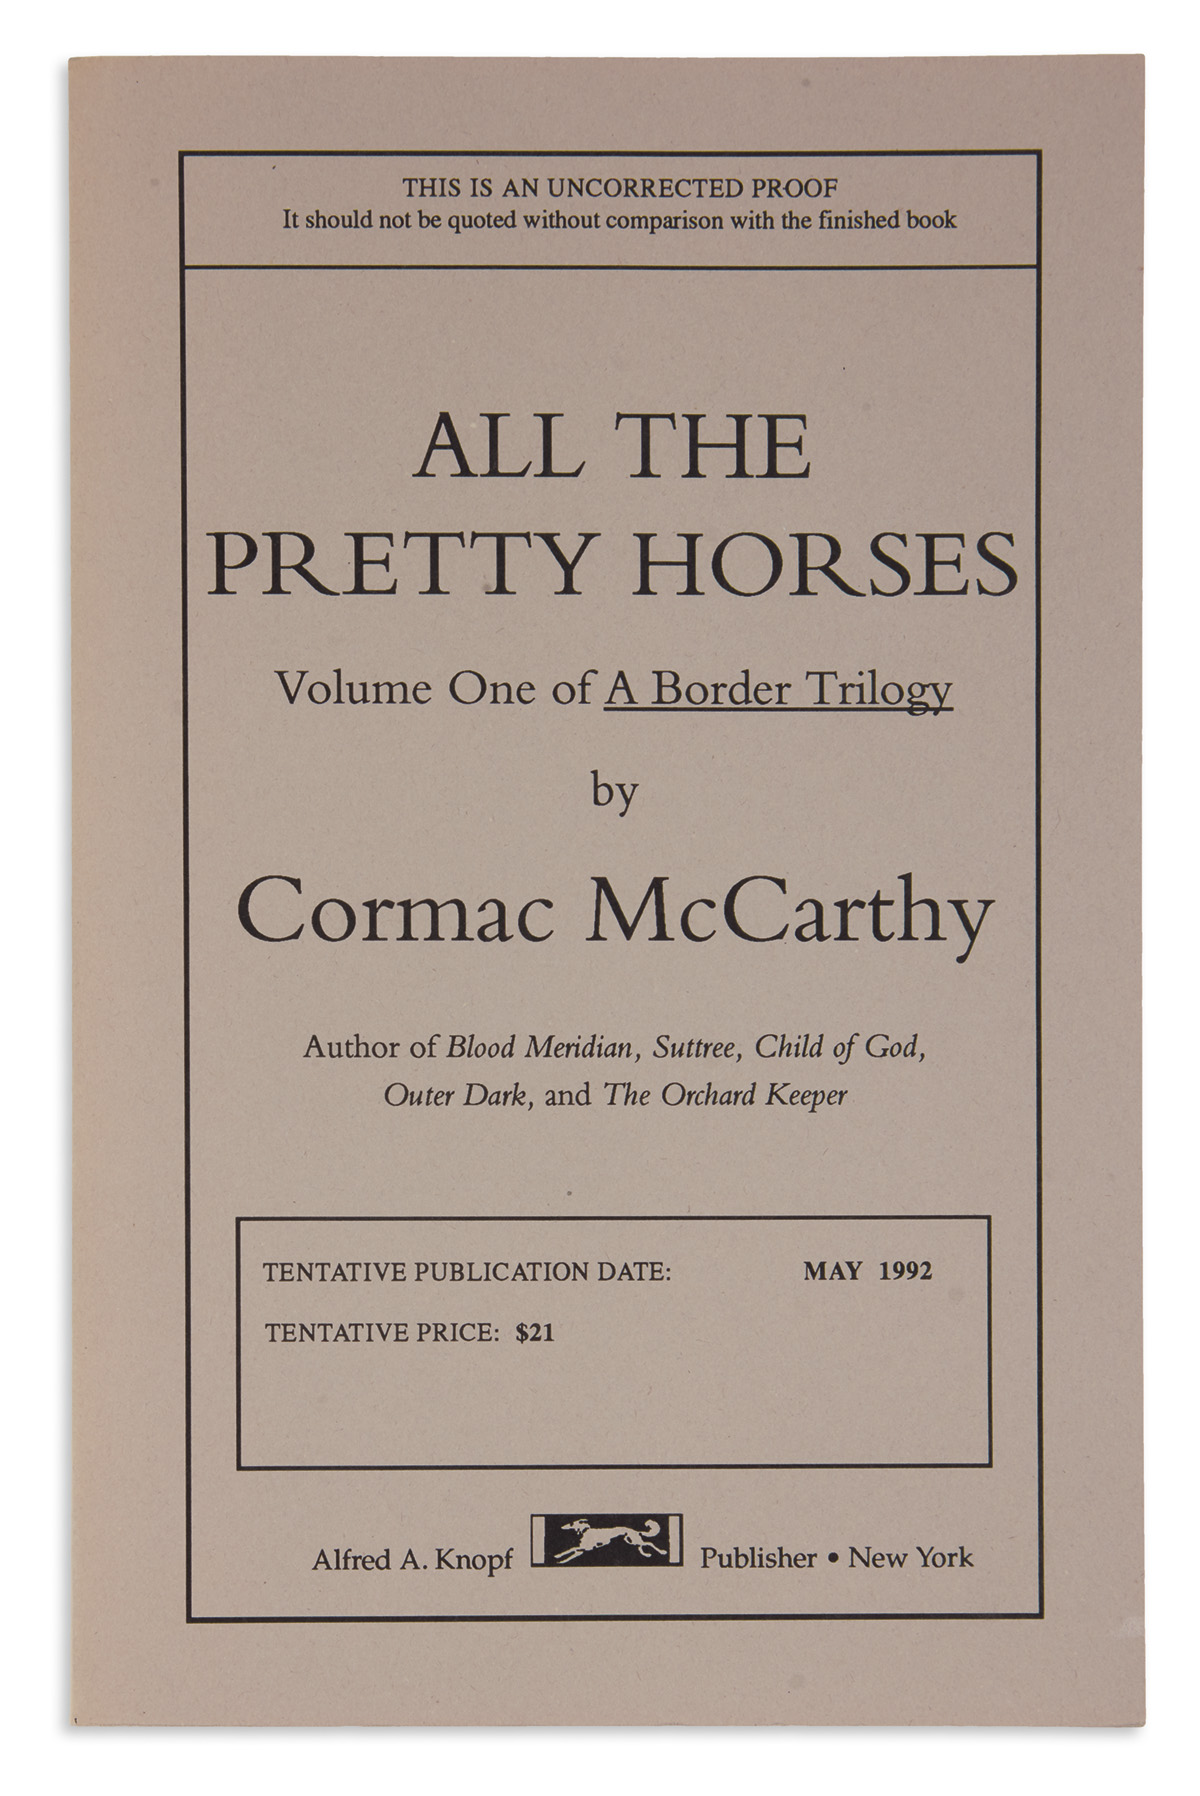 MCCARTHY-CORMAC-All-the-Pretty-Horses--Cities-of-the-Plain